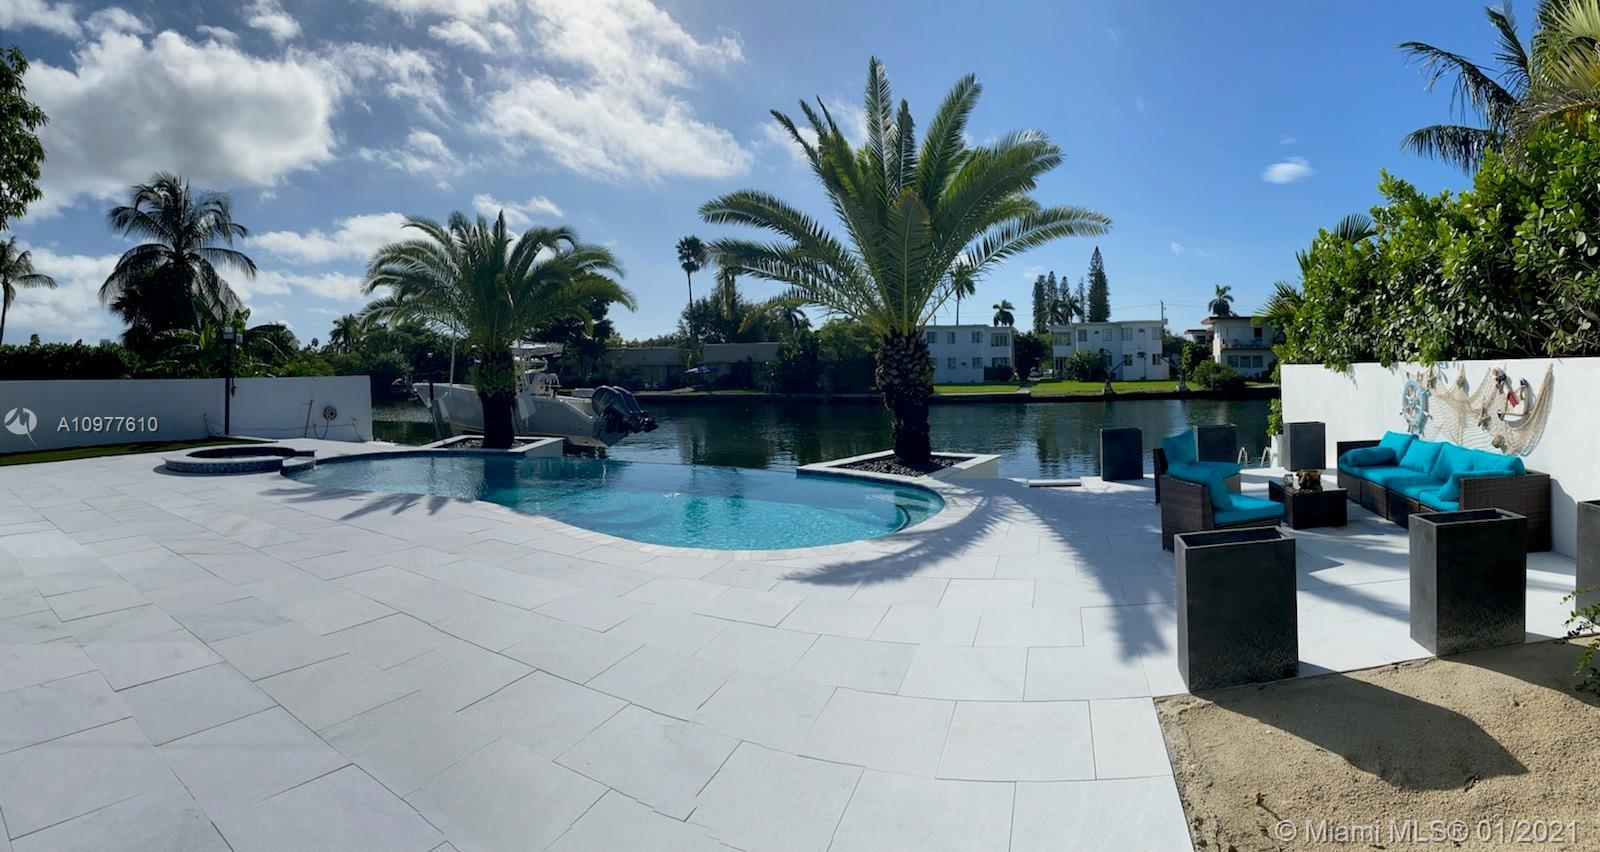 The Must Beautiful Remodeled Waterfront house in Miami Beach. Lots of space in this 4 bedrooms,3 Ful